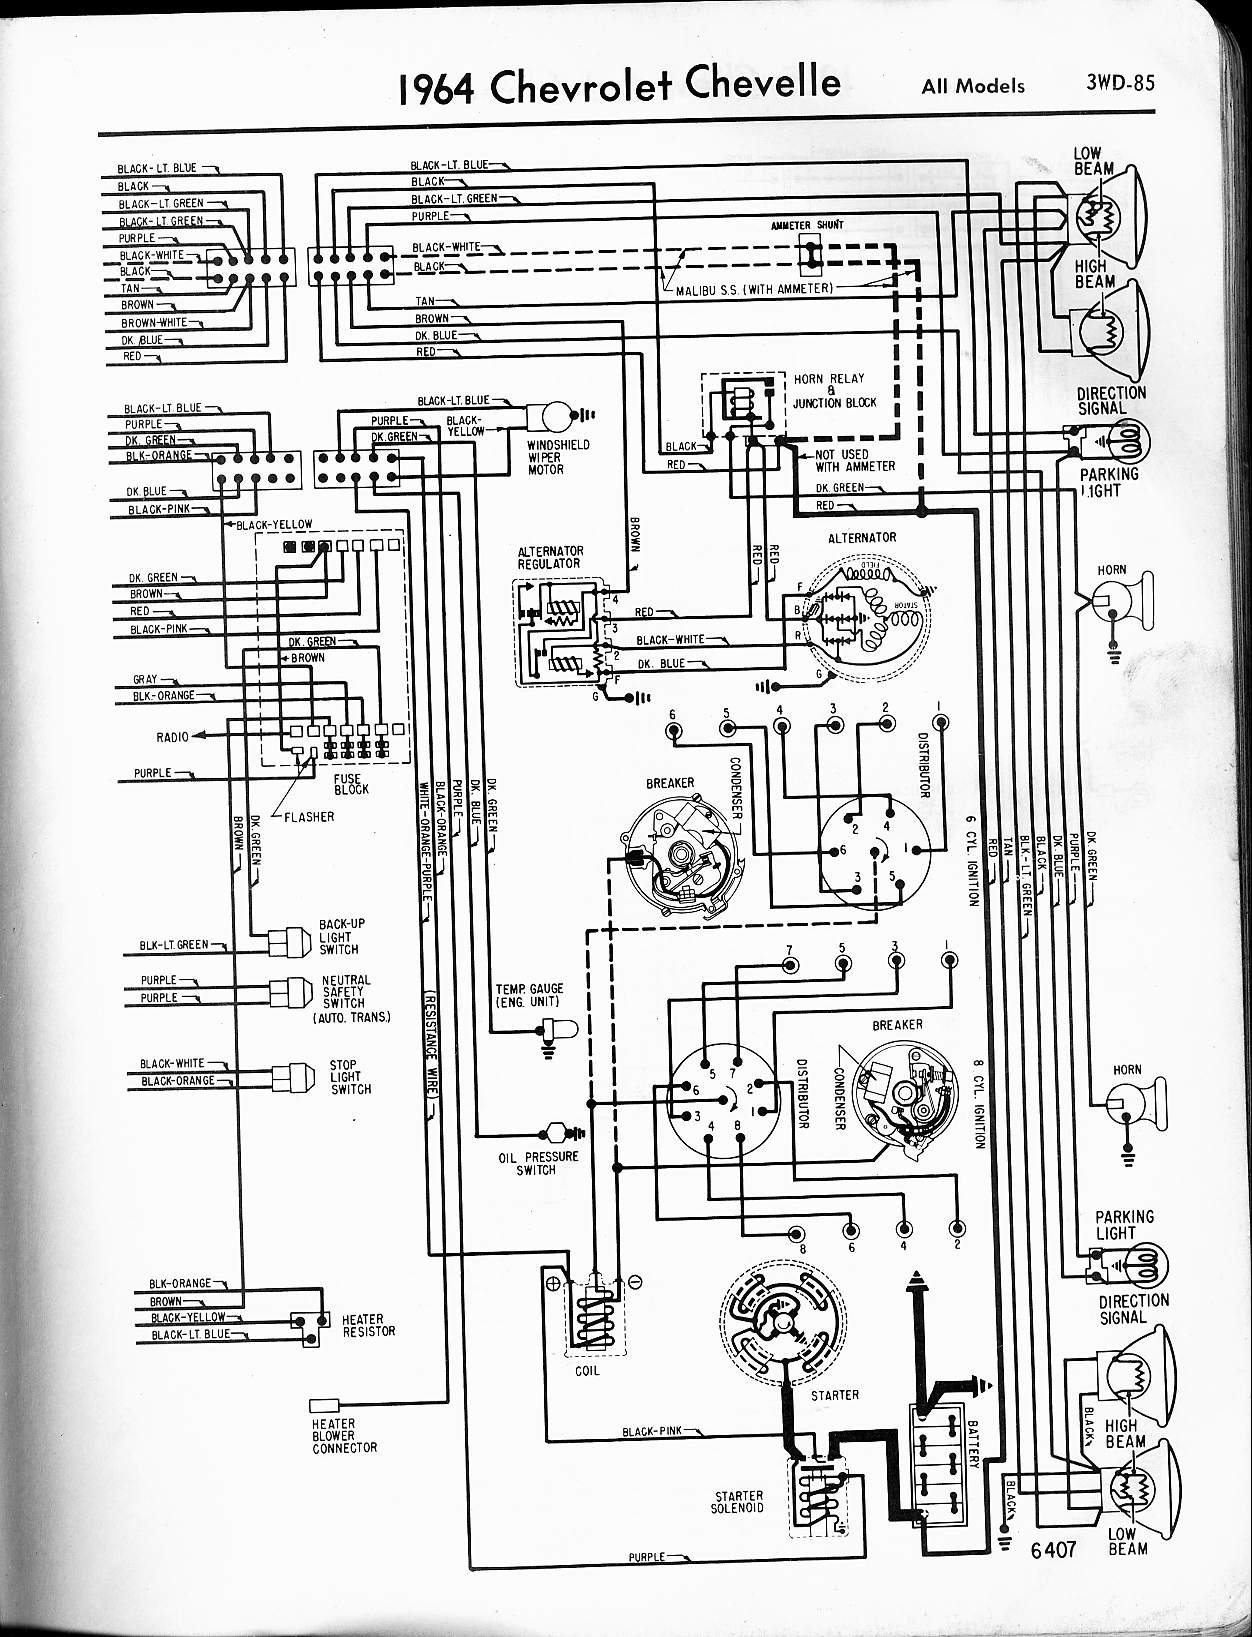 MWireChev64_3WD 085 chevy diagrams 1967 chevelle wiring diagram pdf at soozxer.org